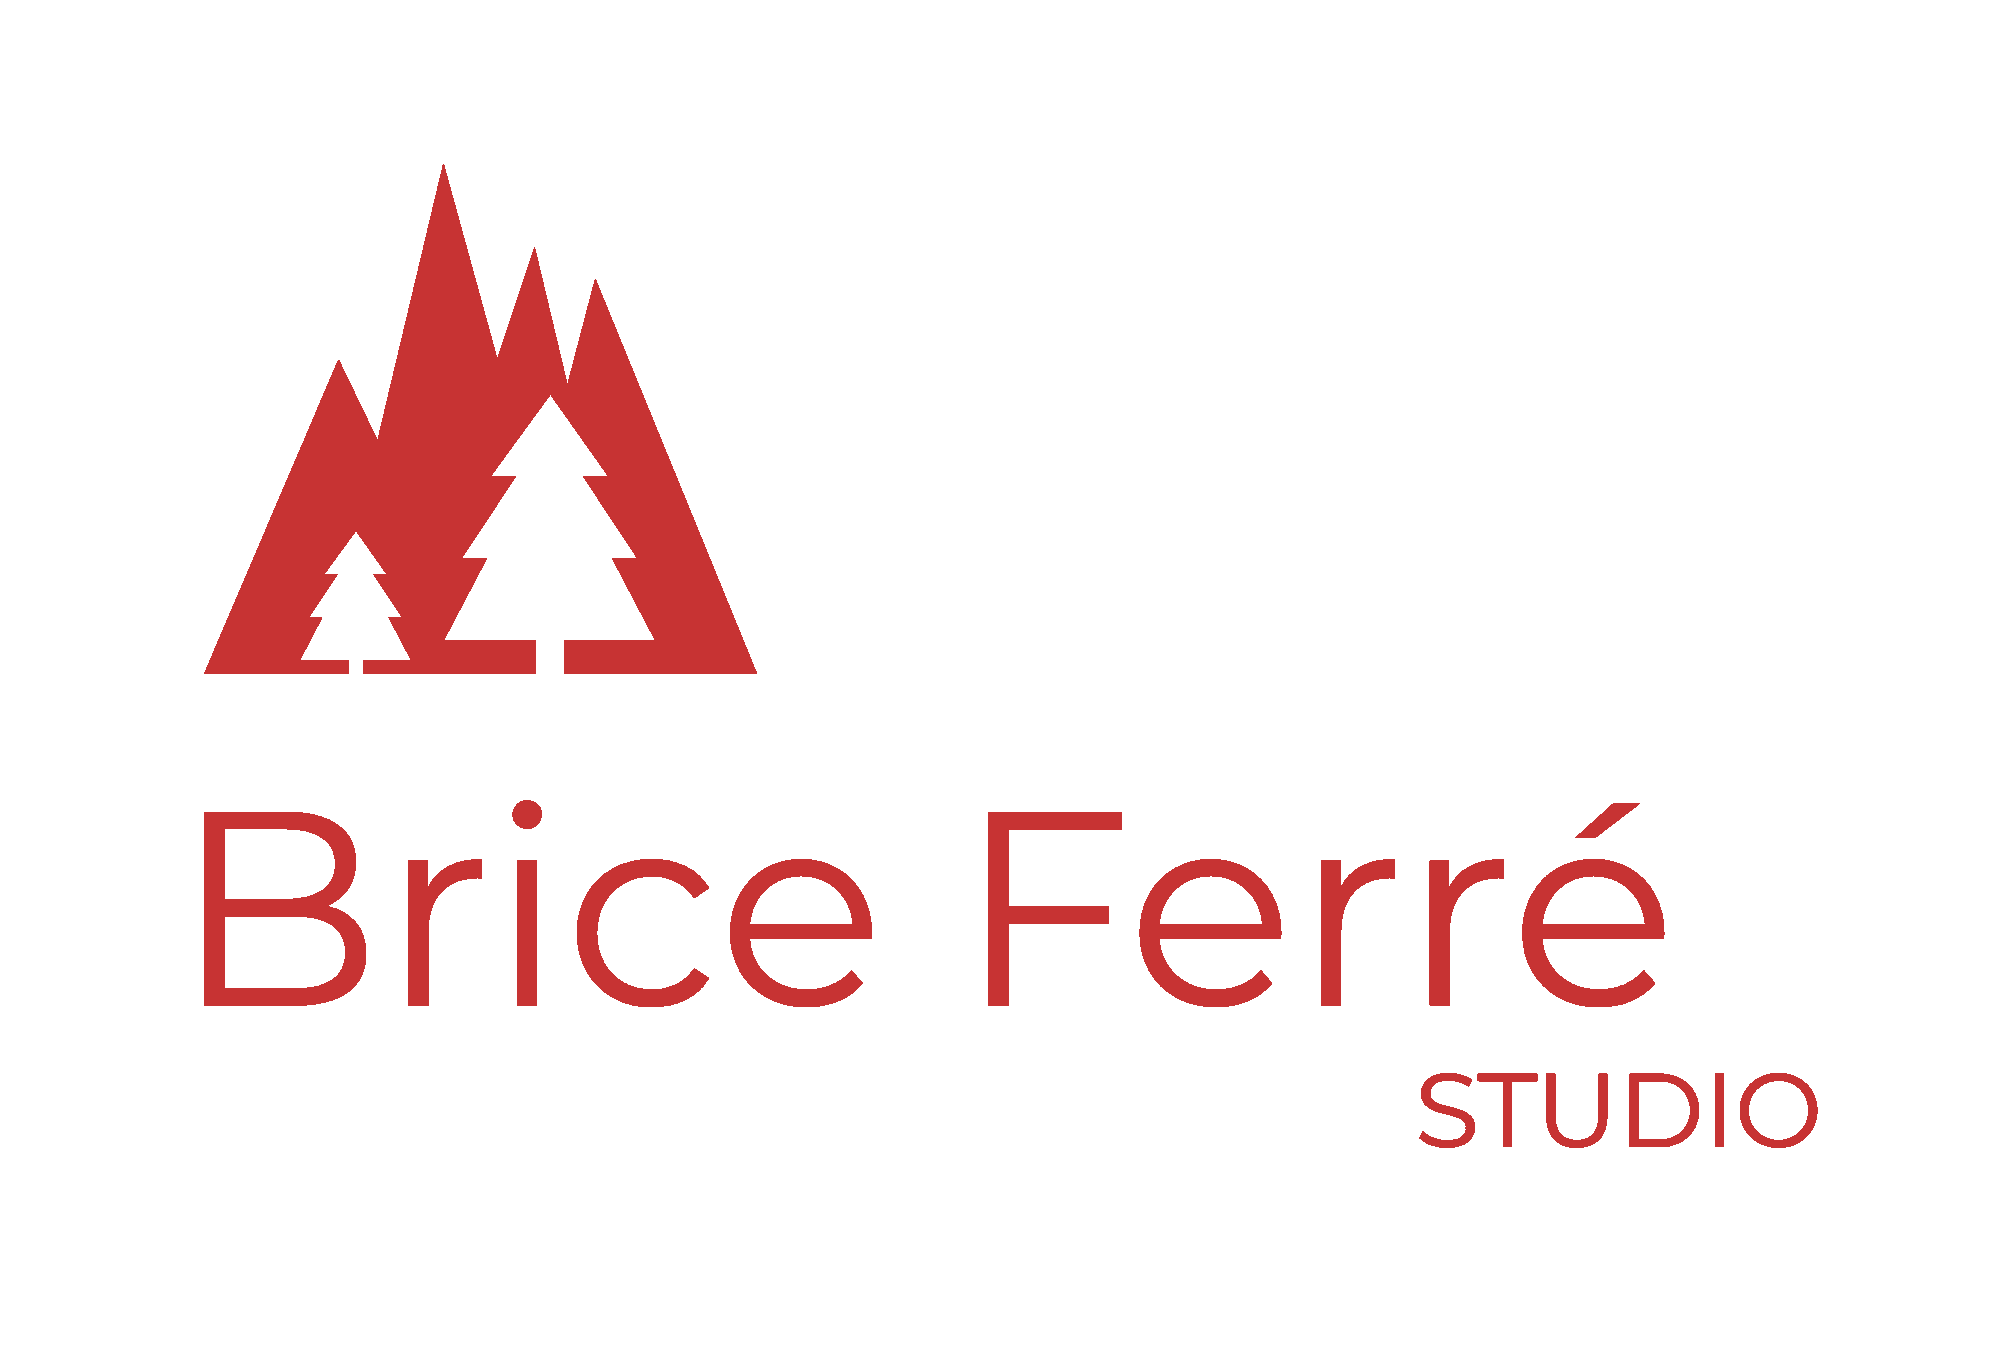 Brice Ferré Studio - Vancouver Photographer - Portrait, Runners, Athletes and Outdoor and Mountain Adventures